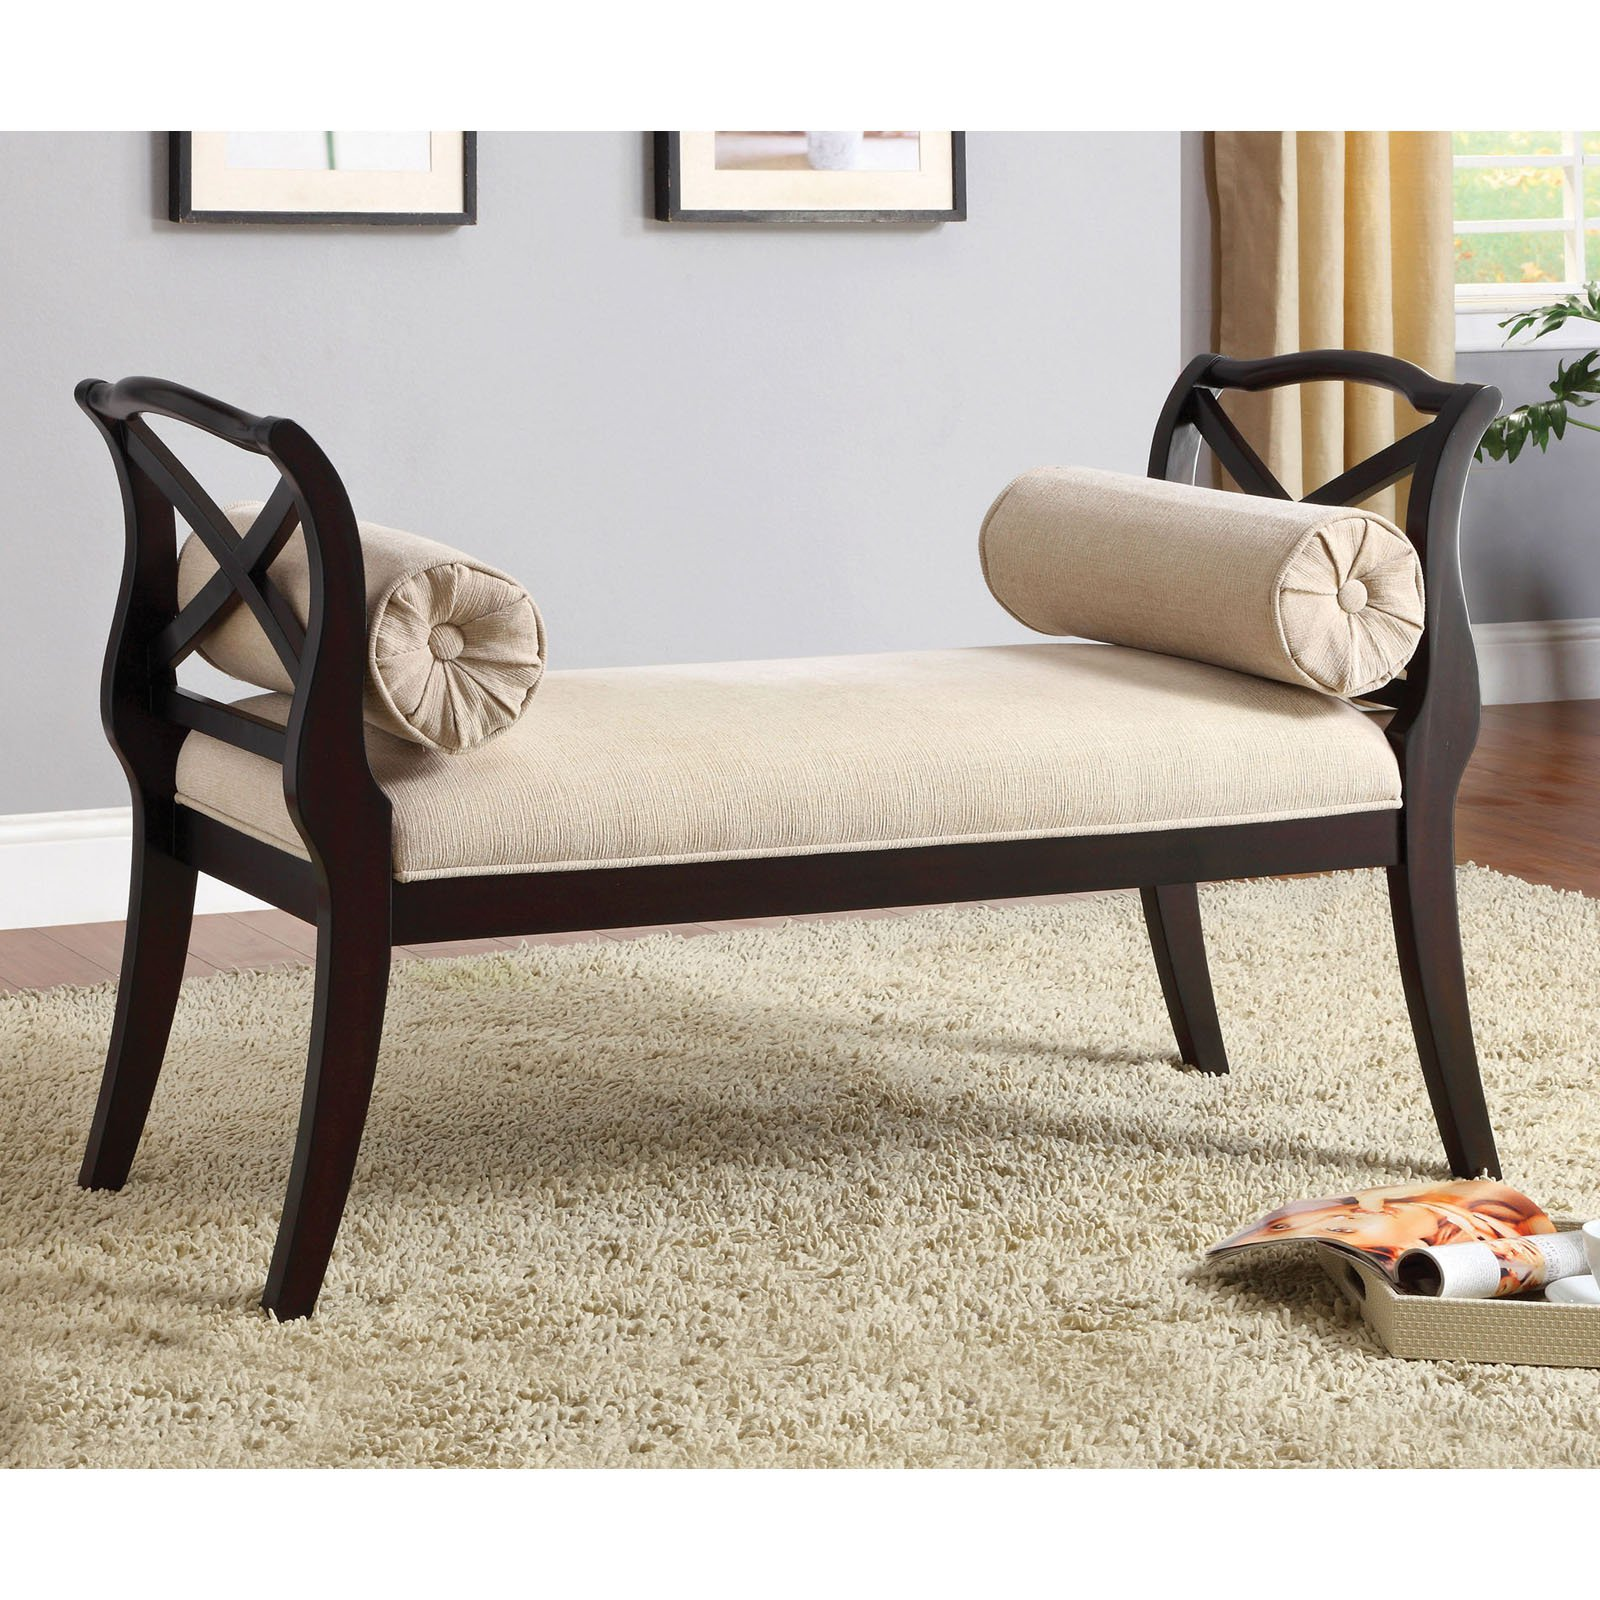 Furniture of America Empress Ivory Upholstered Bench